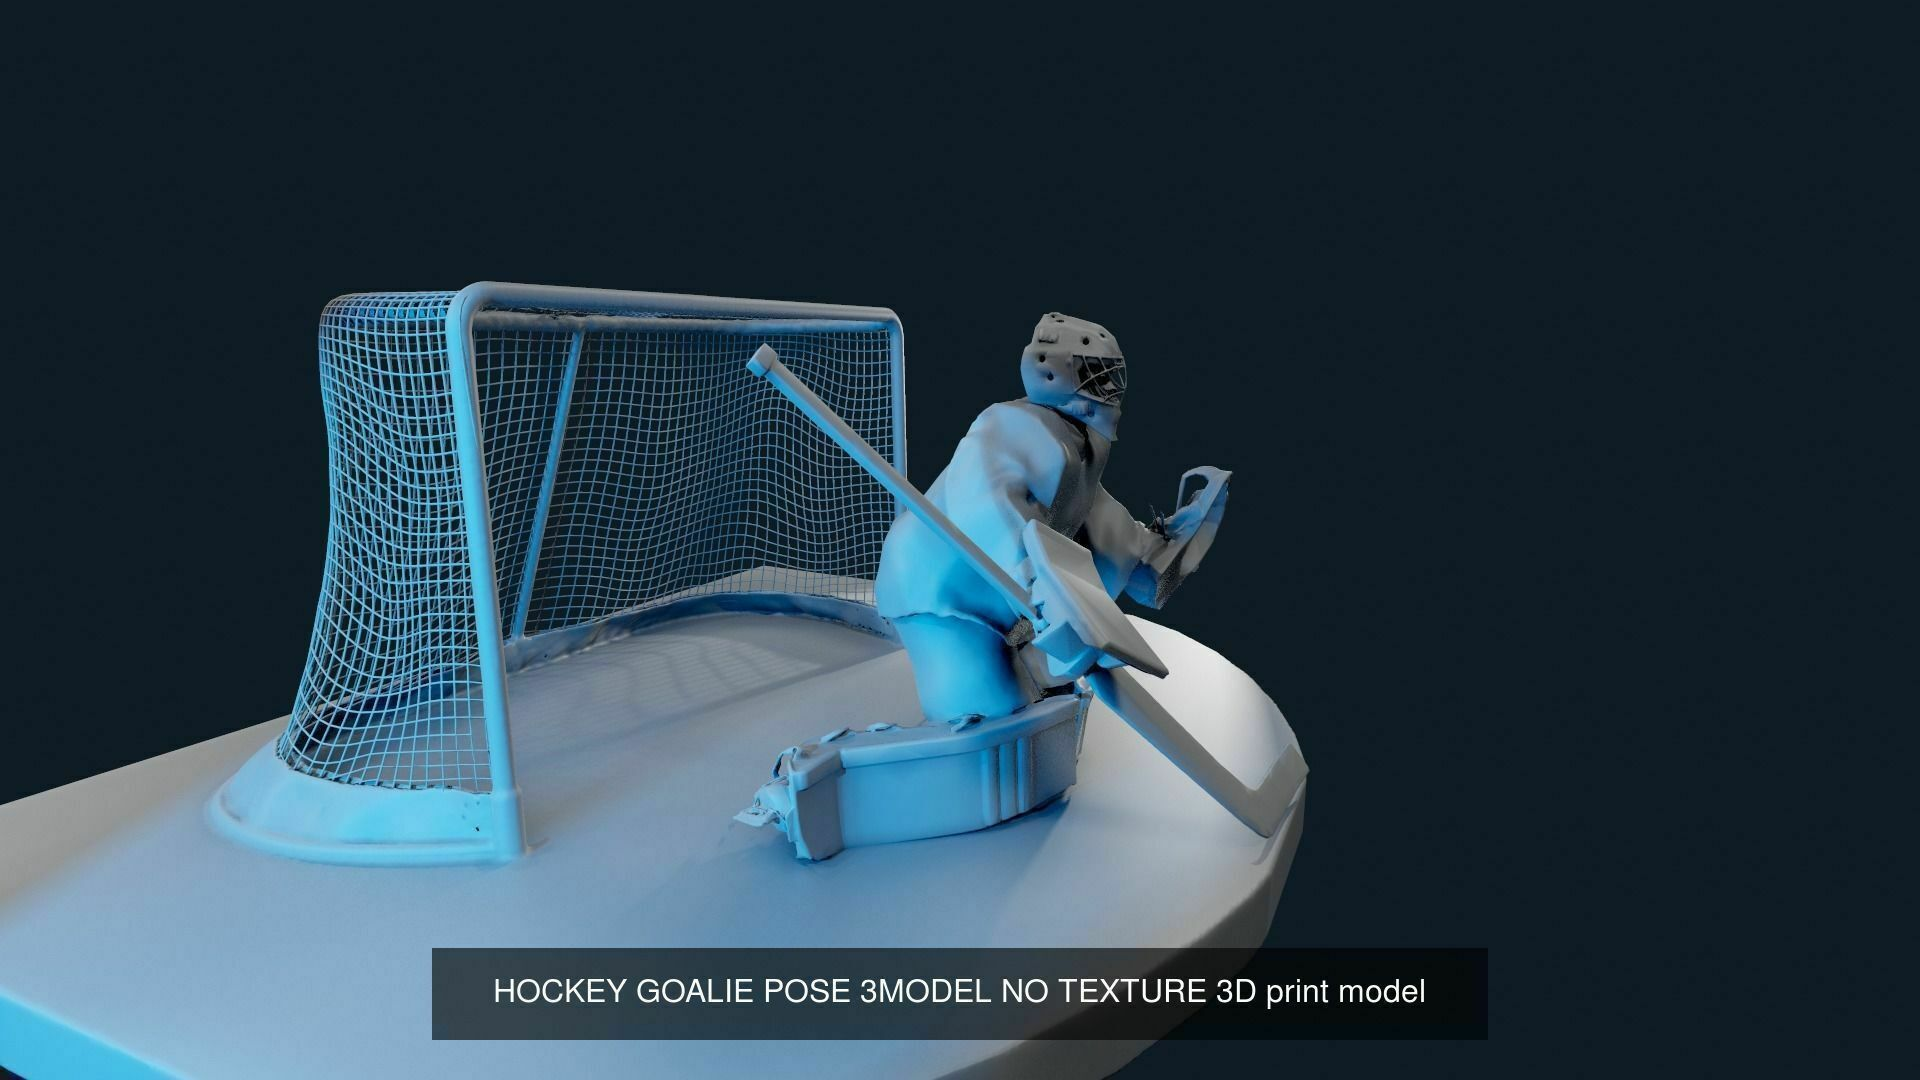 ultimate-hockey-poses-pack-model-no-texture-3d-model-max-obj-fbx-stl-tbscene (8).jpg Download OBJ file ULTIMATE HOCKEY POSES PACK MODEL NO TEXTURE 3D Model Collection • 3D printing template, NightCreativity